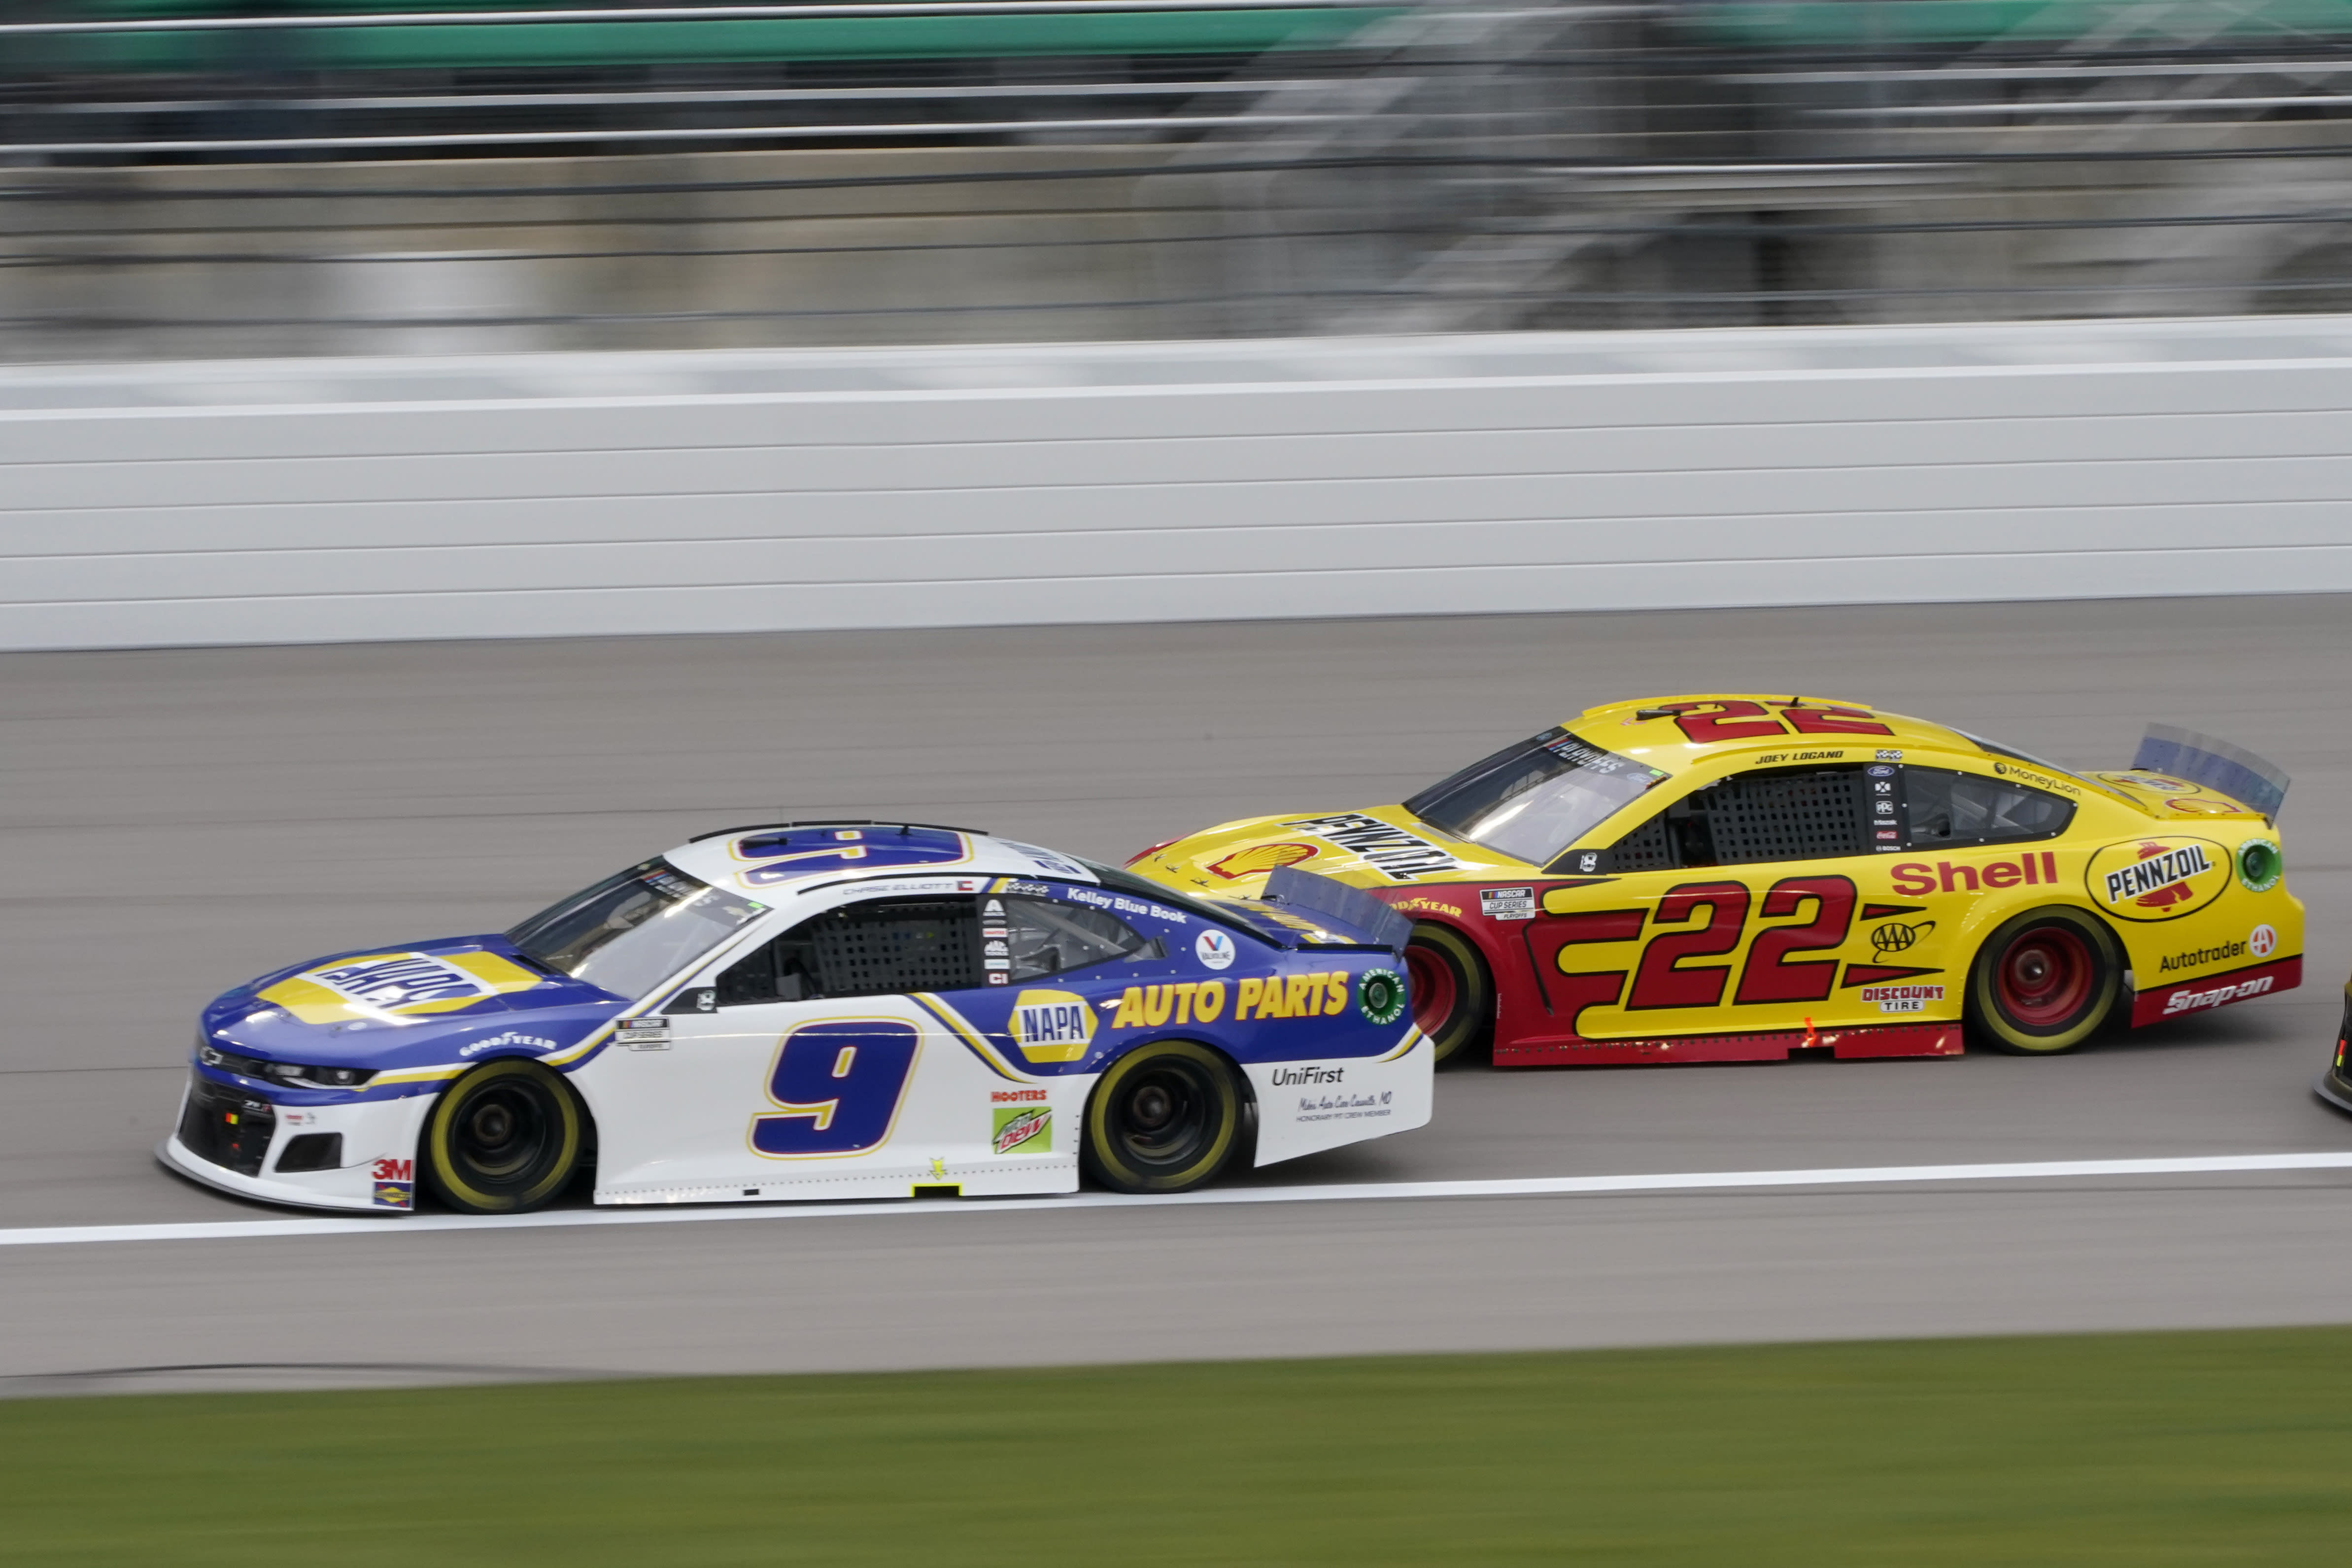 Chase Elliott (9) leads Joey Logano (22) on the first lap of a NASCAR Cup Series auto race at Kansas Speedway in Kansas City, Kan., Sunday, Oct. 18, 2020. (AP Photo/Orlin Wagner)